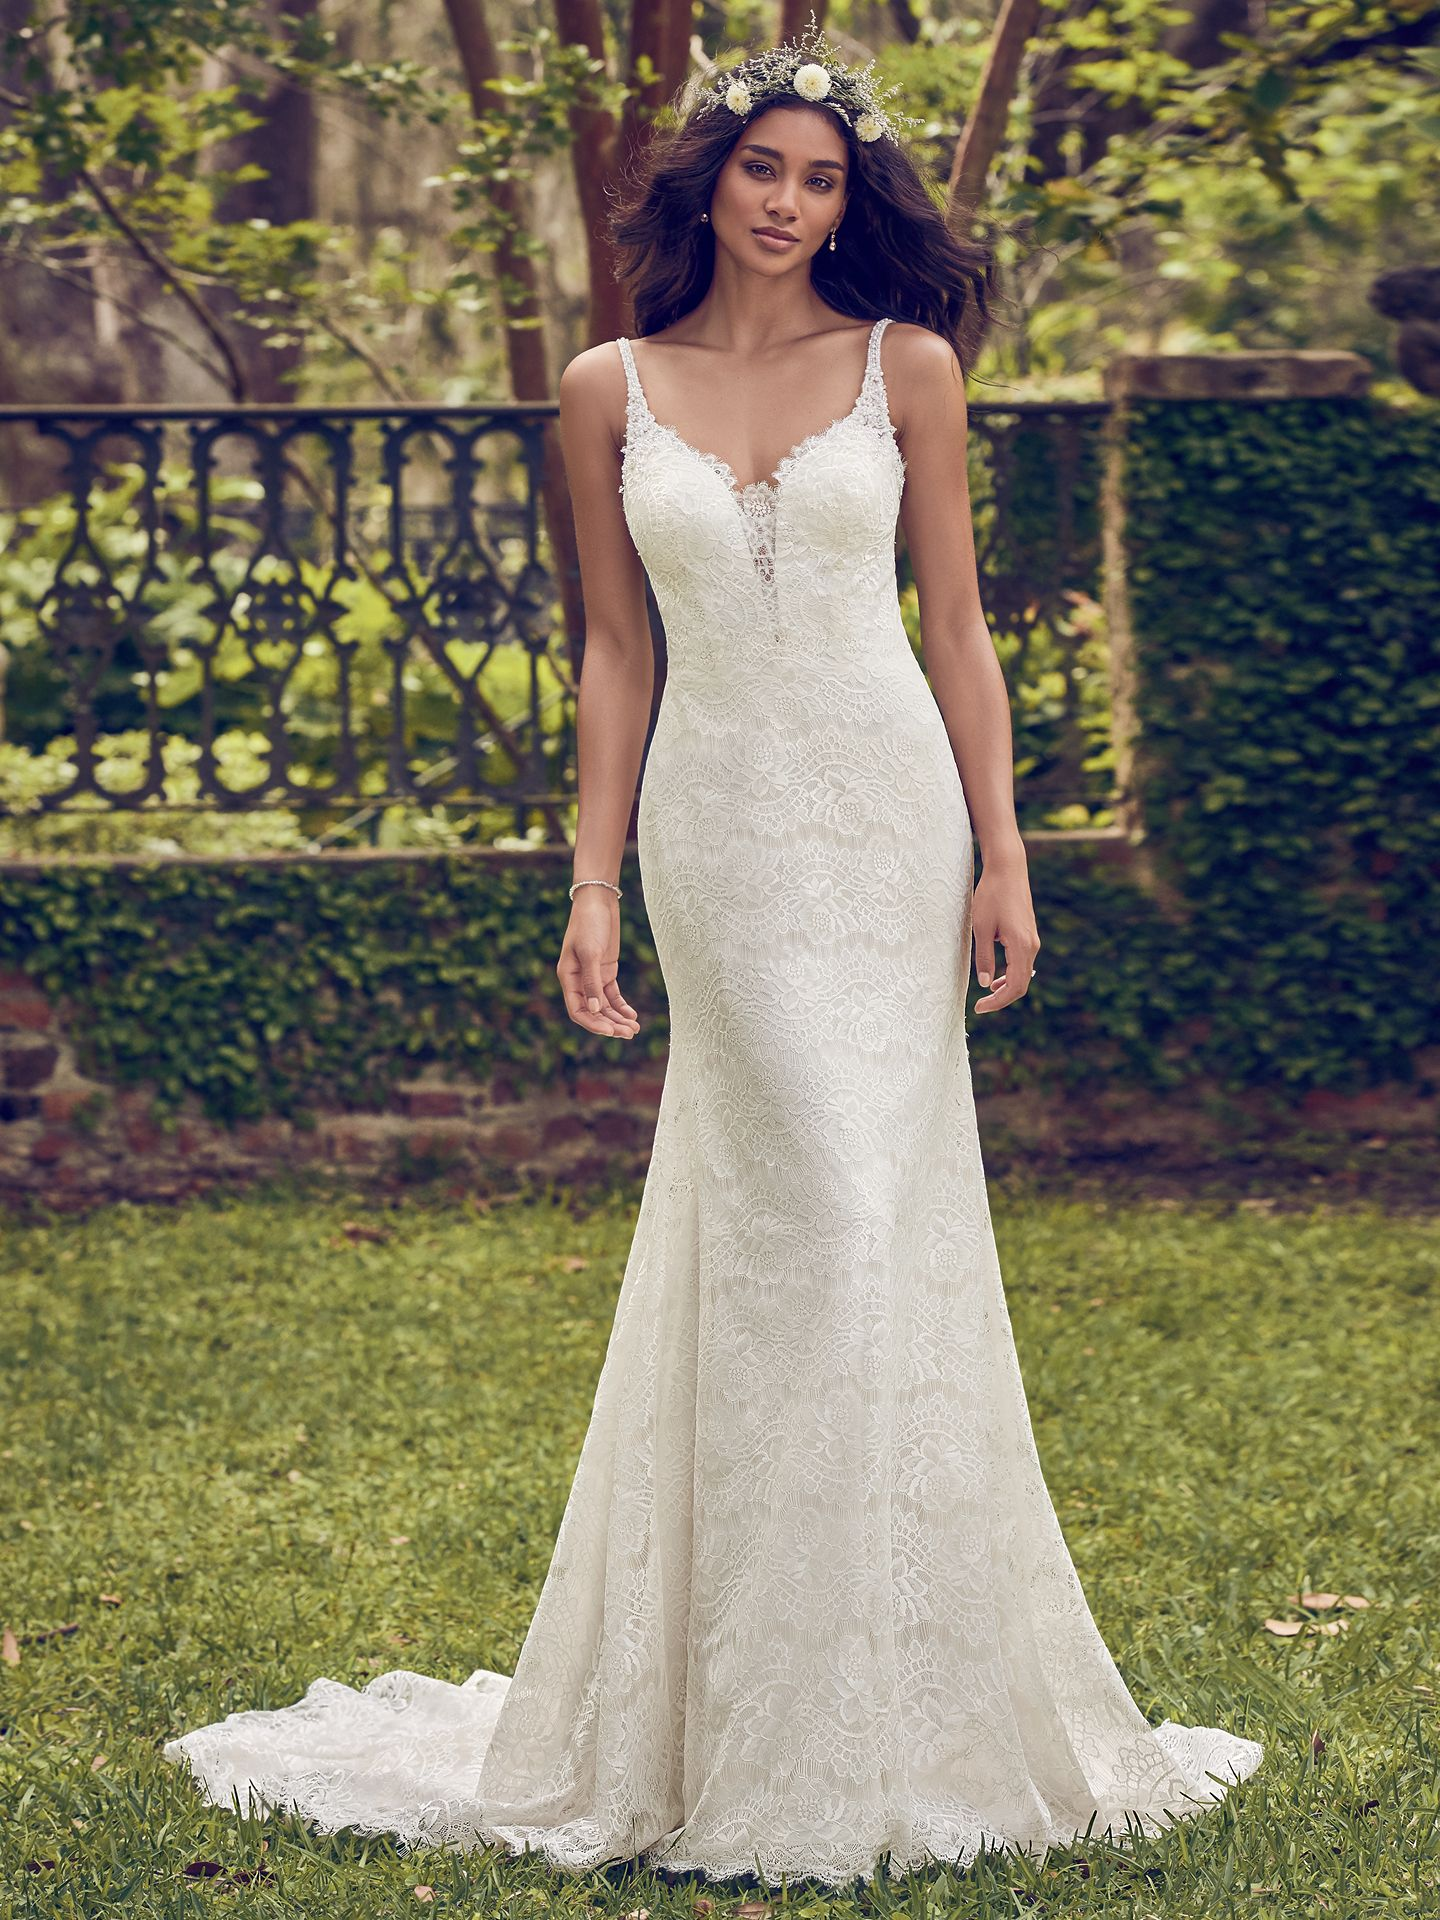 Dorian Wedding Dress Features Soft Allover Lace Comprises This Featuring Illusion Details